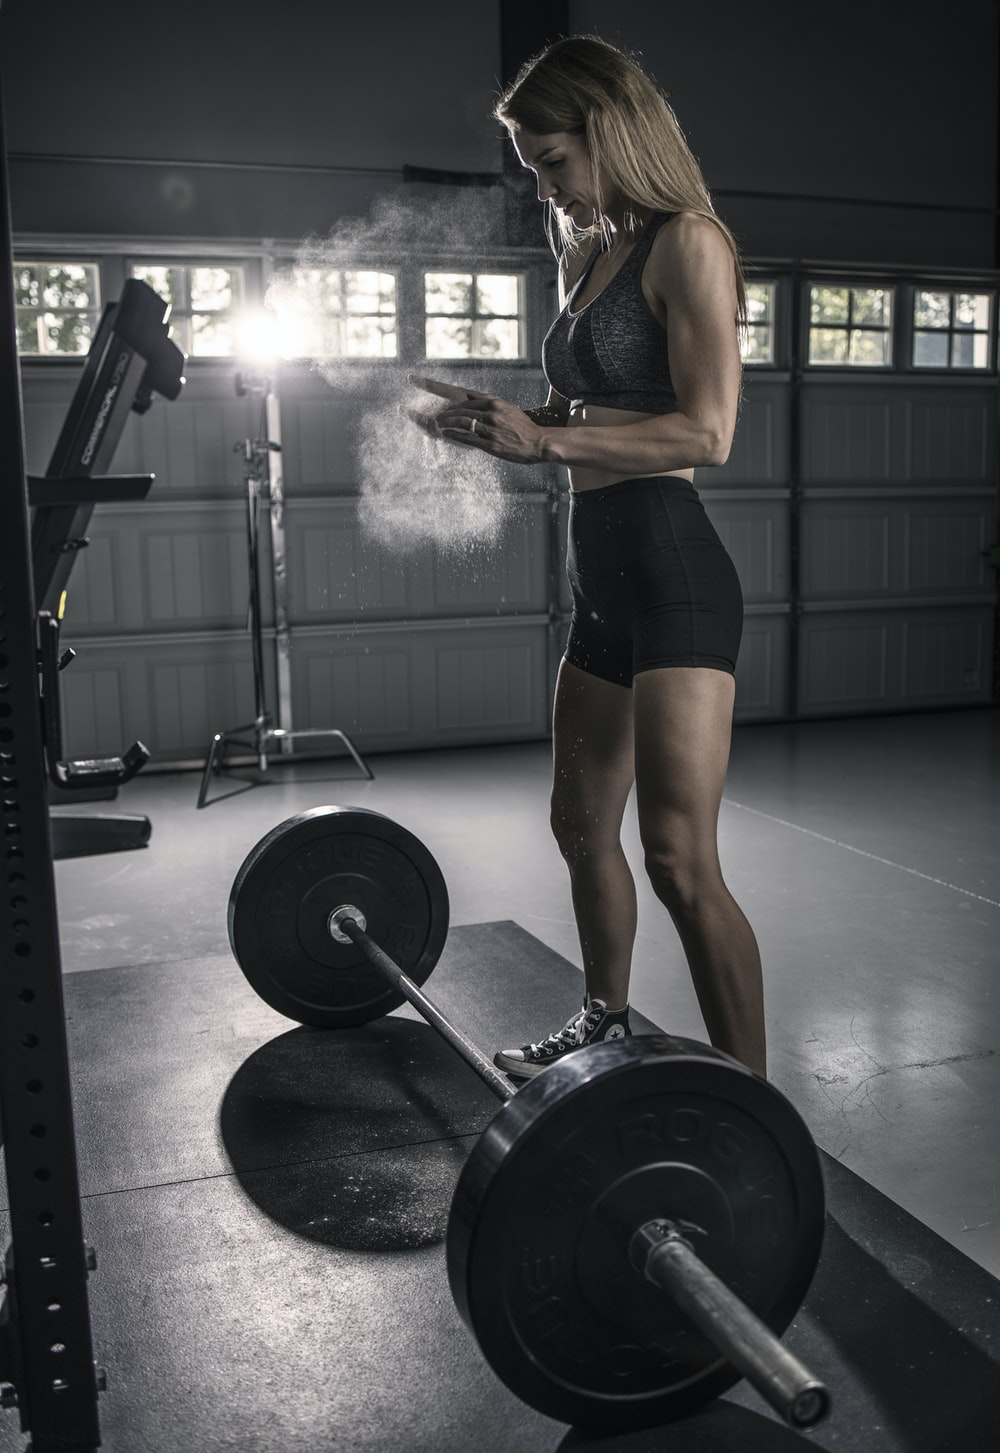 woman in black tank top and black shorts holding barbell